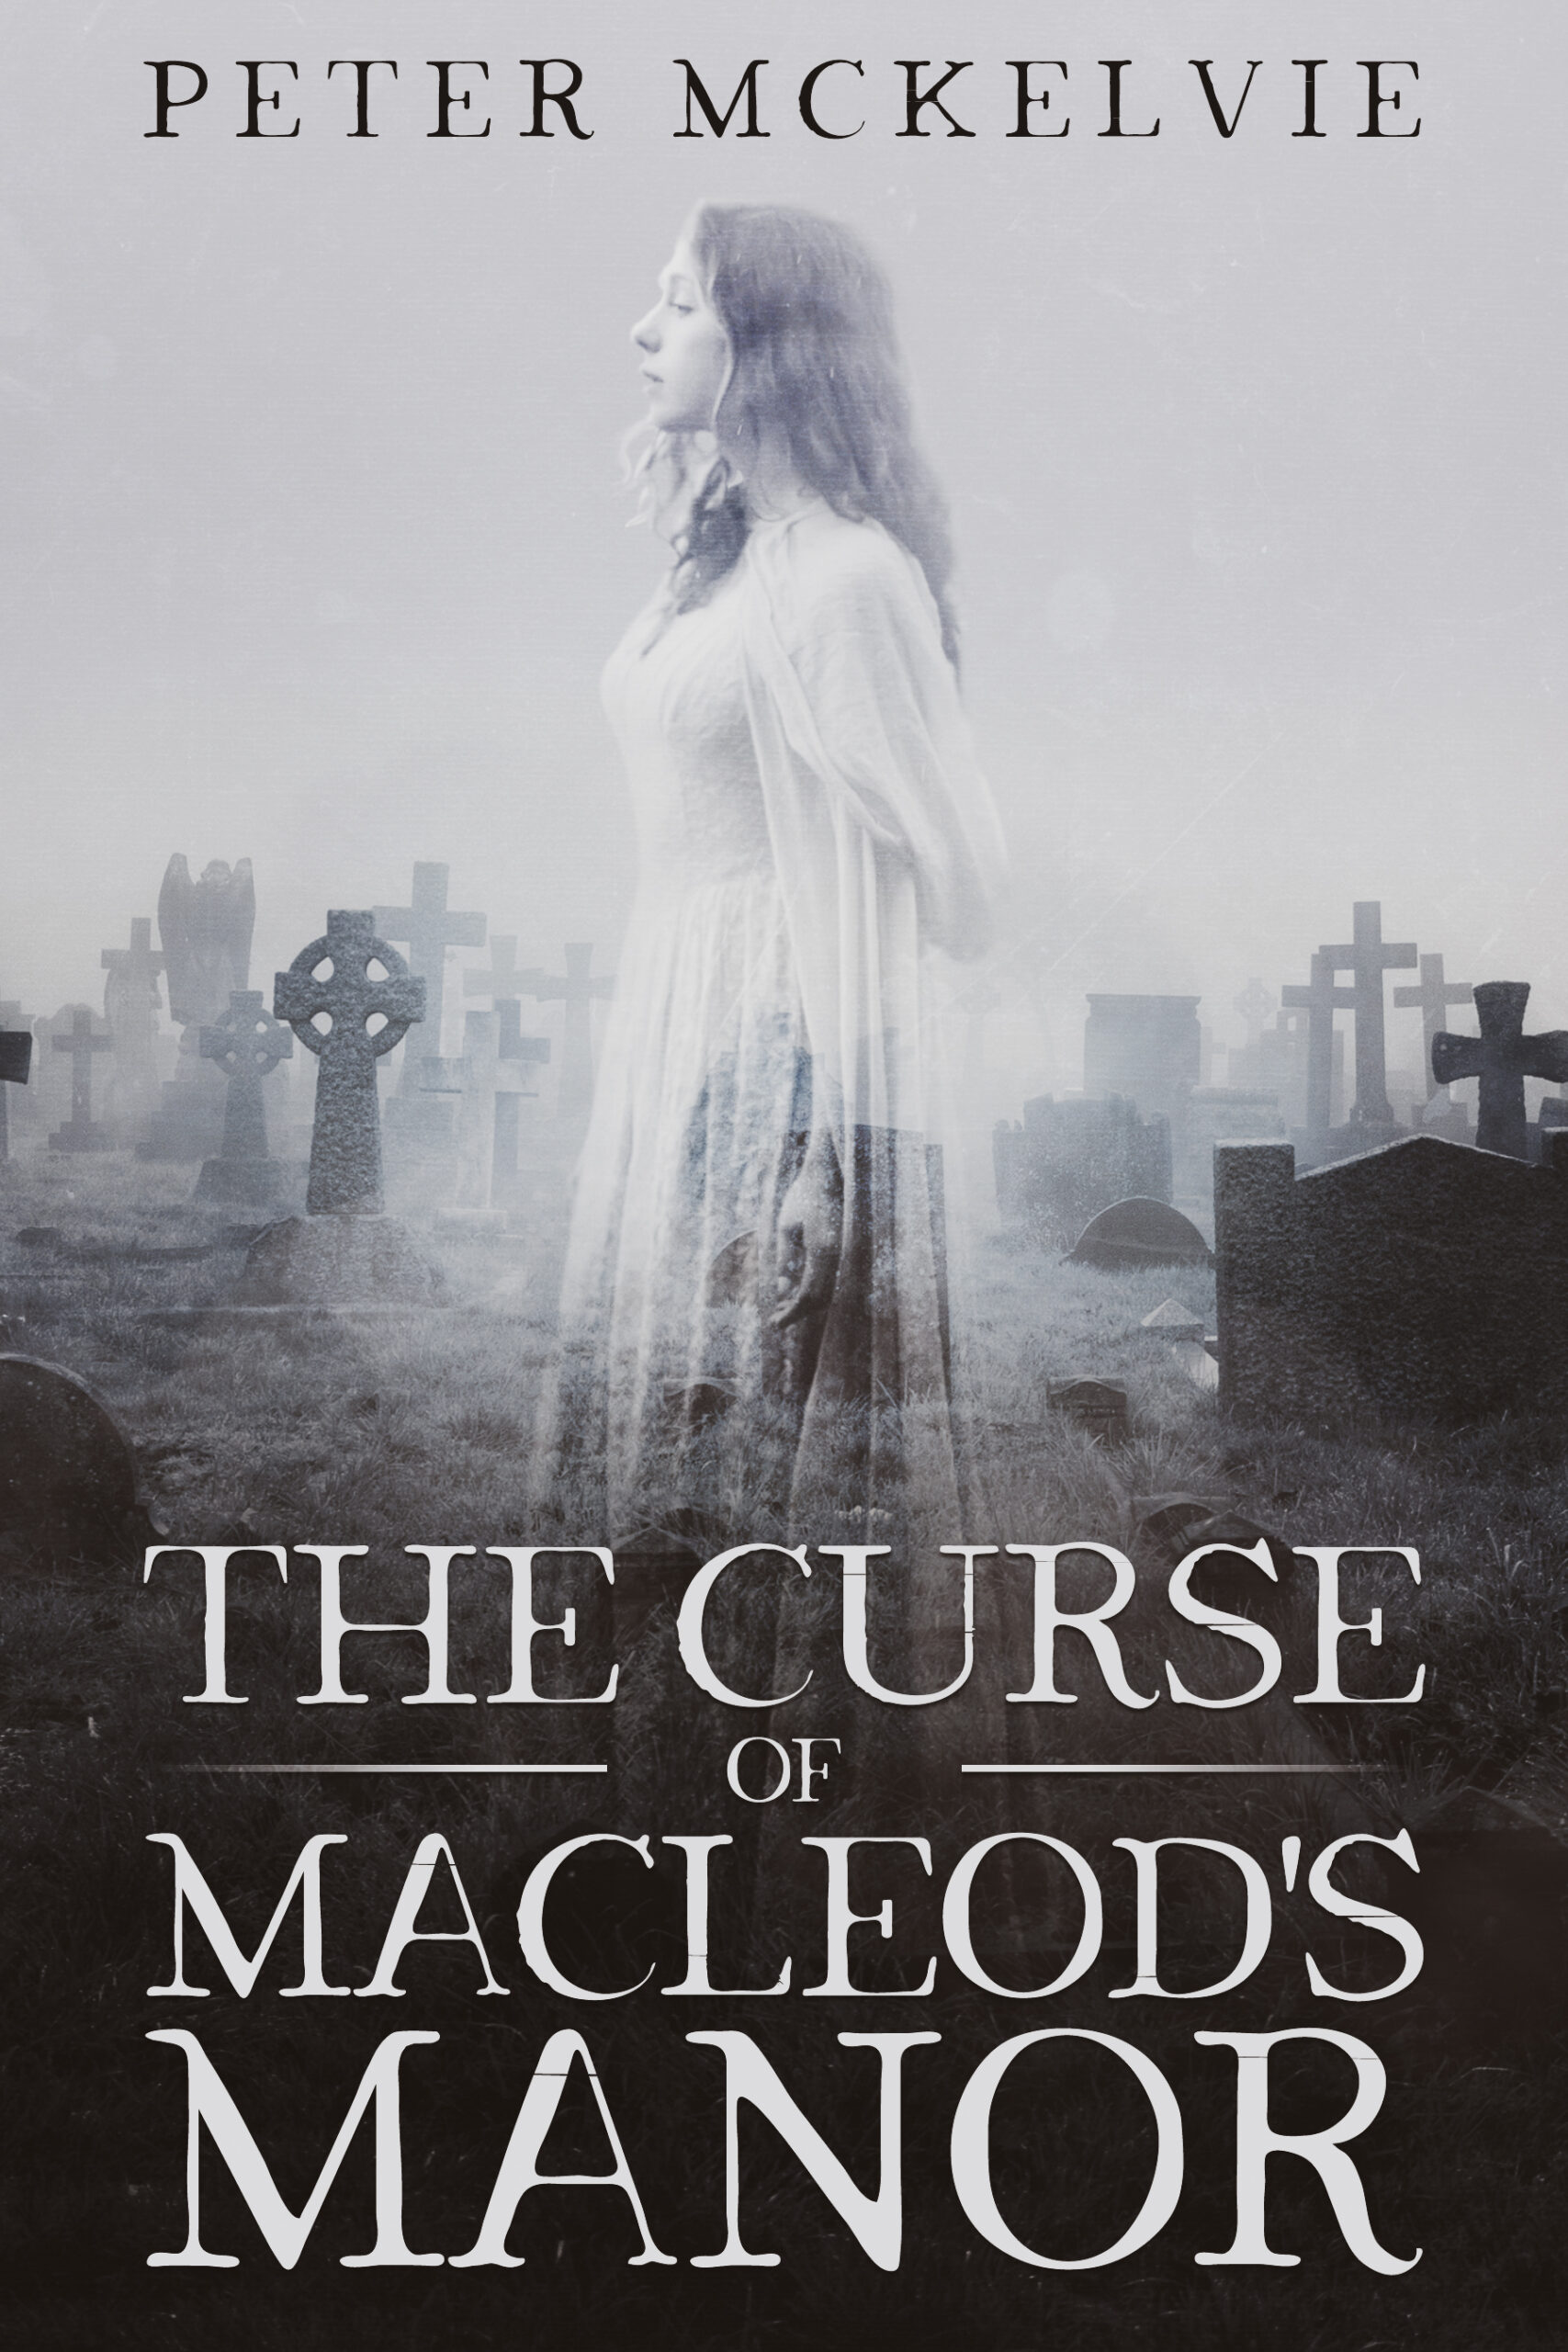 The-curse-of-MacLeods-Manner-Ebook-cover.jpg